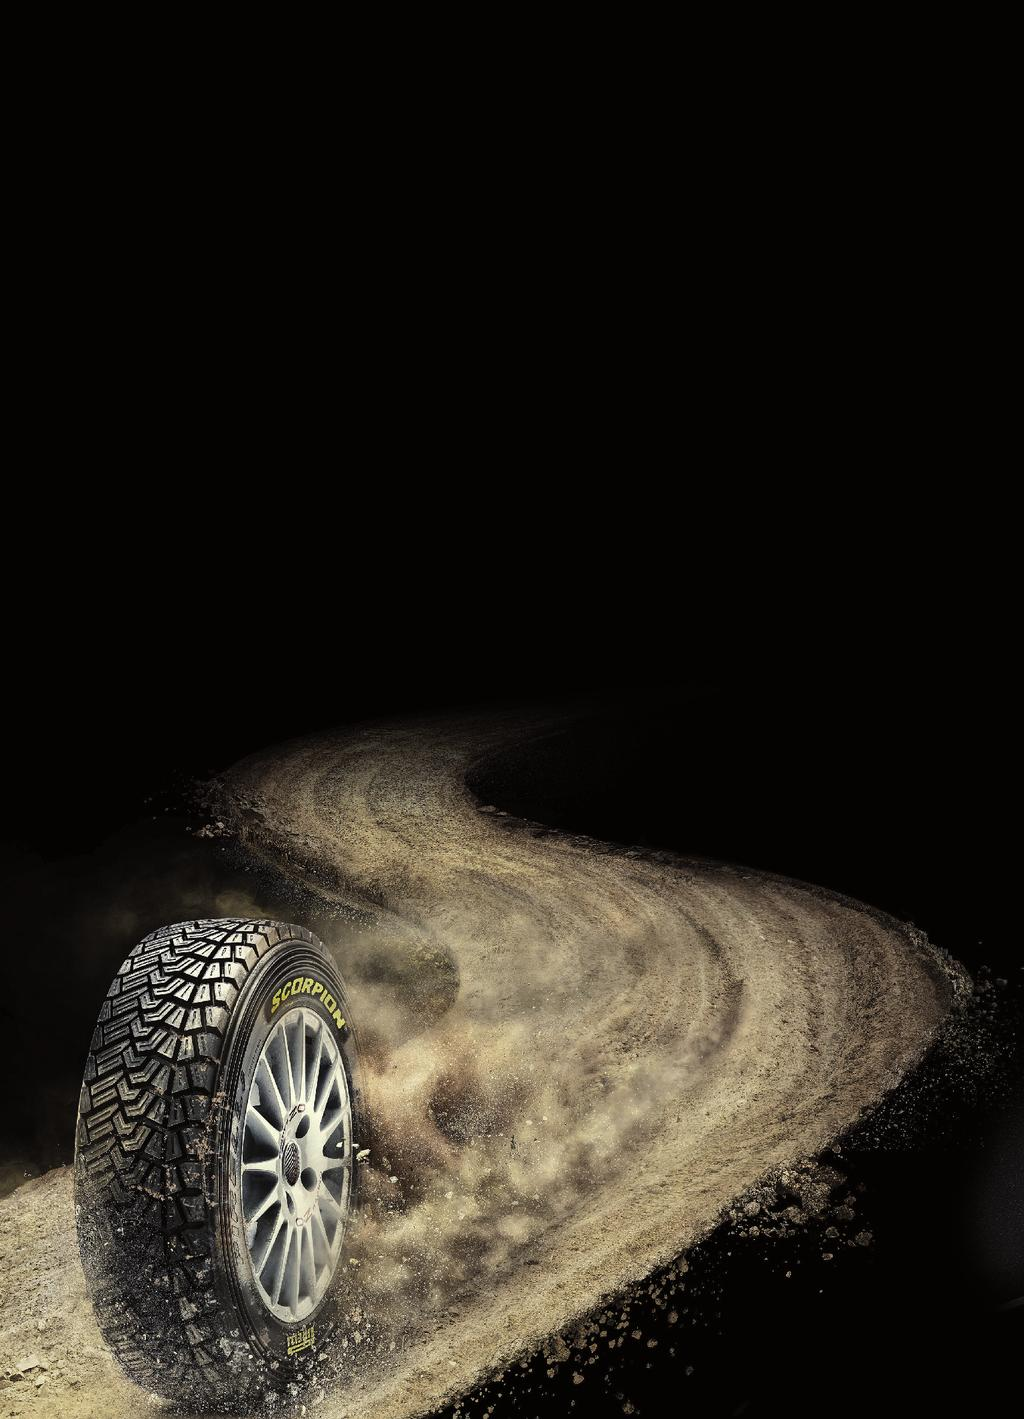 LIST RALLY TYRES MARCH 1st, 2017 WE SELL WHAT WE RACE